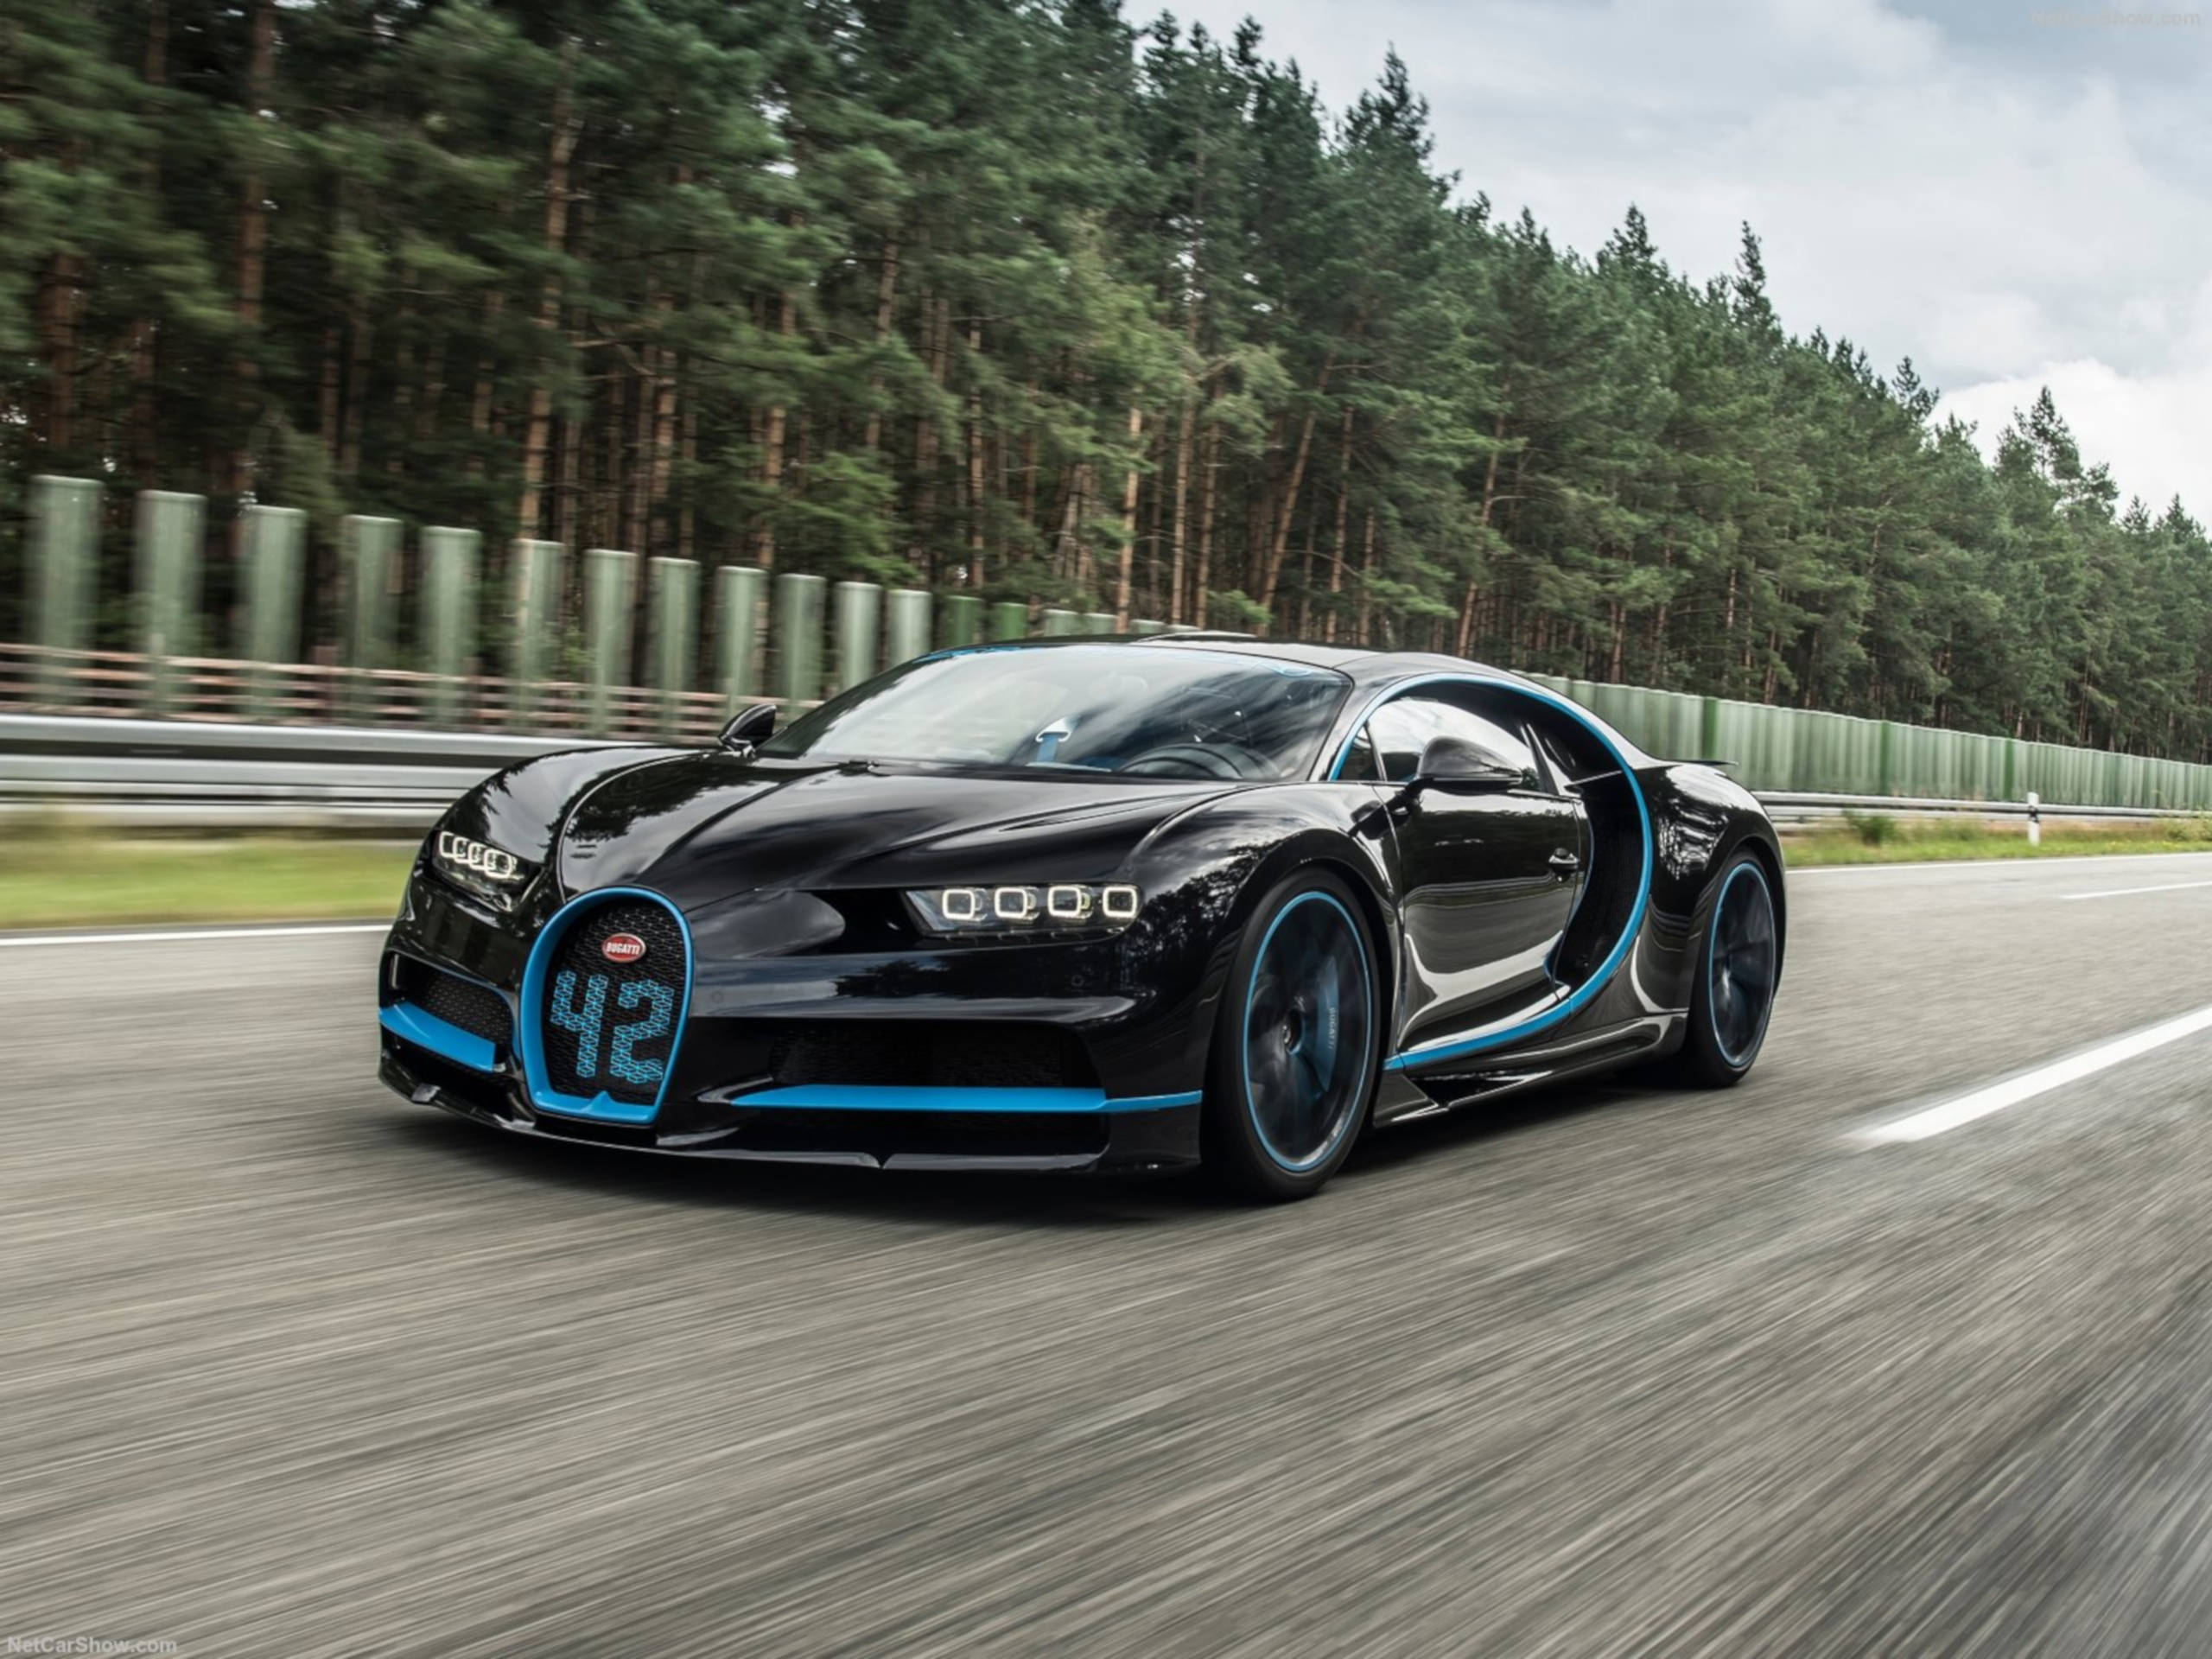 <p>NOTHING LEFT TO CHANCE — Image © NETCARSHOW.COM With more than 1,000 kW skulking under the bonnet of the Bugatti Chiron, a two-decimal mechanical margin of error is two decimals too much. As a result, the French hypercar maker has made its 'Bugatti Telemetry' available to Chiron customers. The system, [&hellip;]</p>